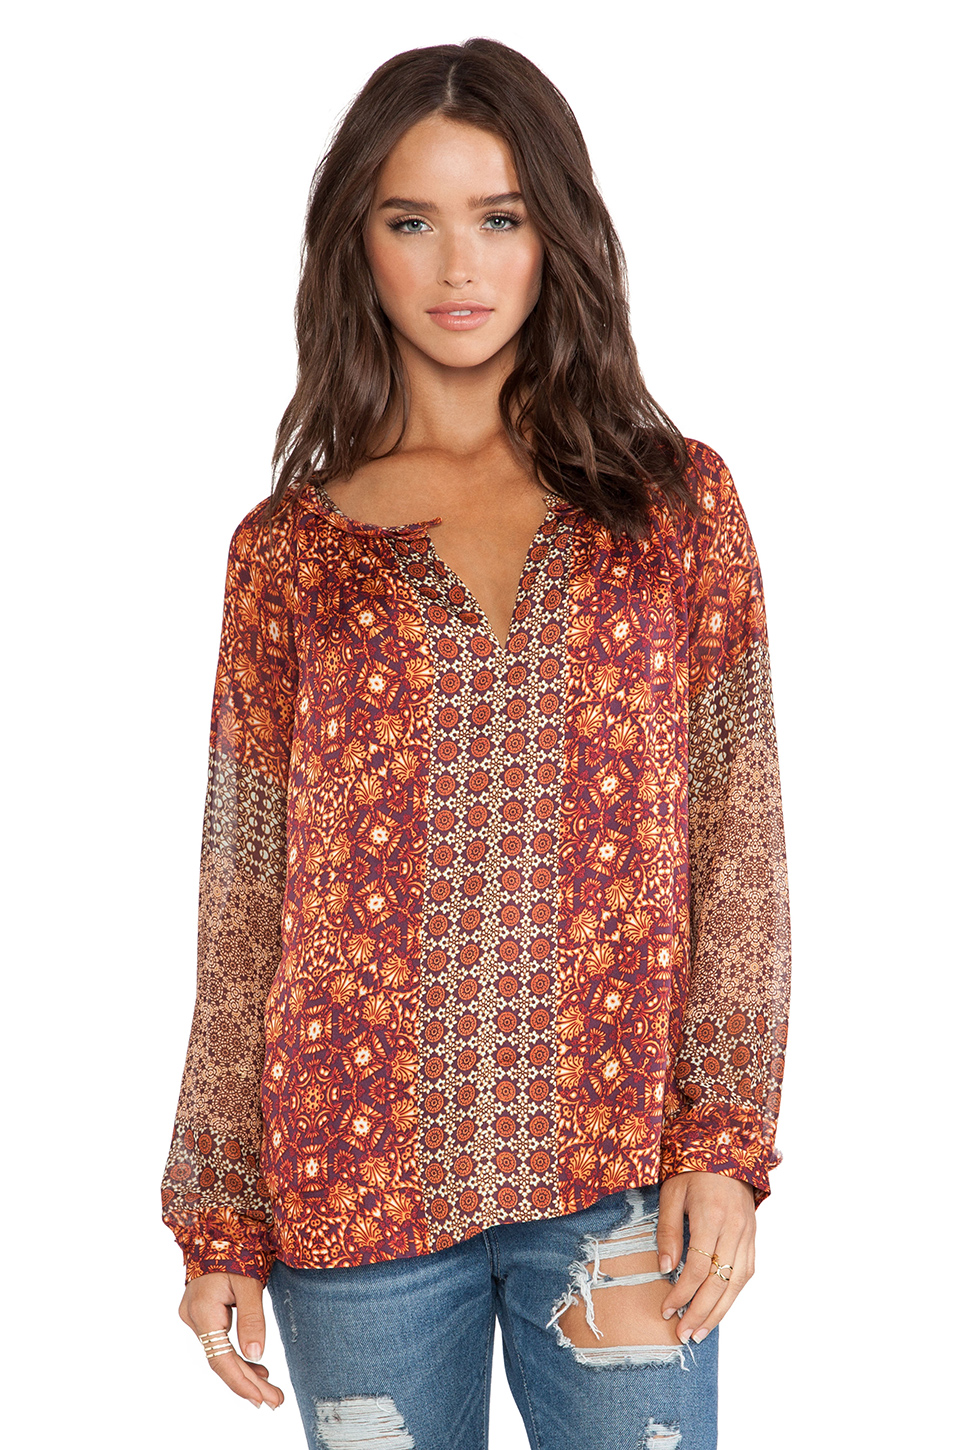 Gypsy Peasant Blouses